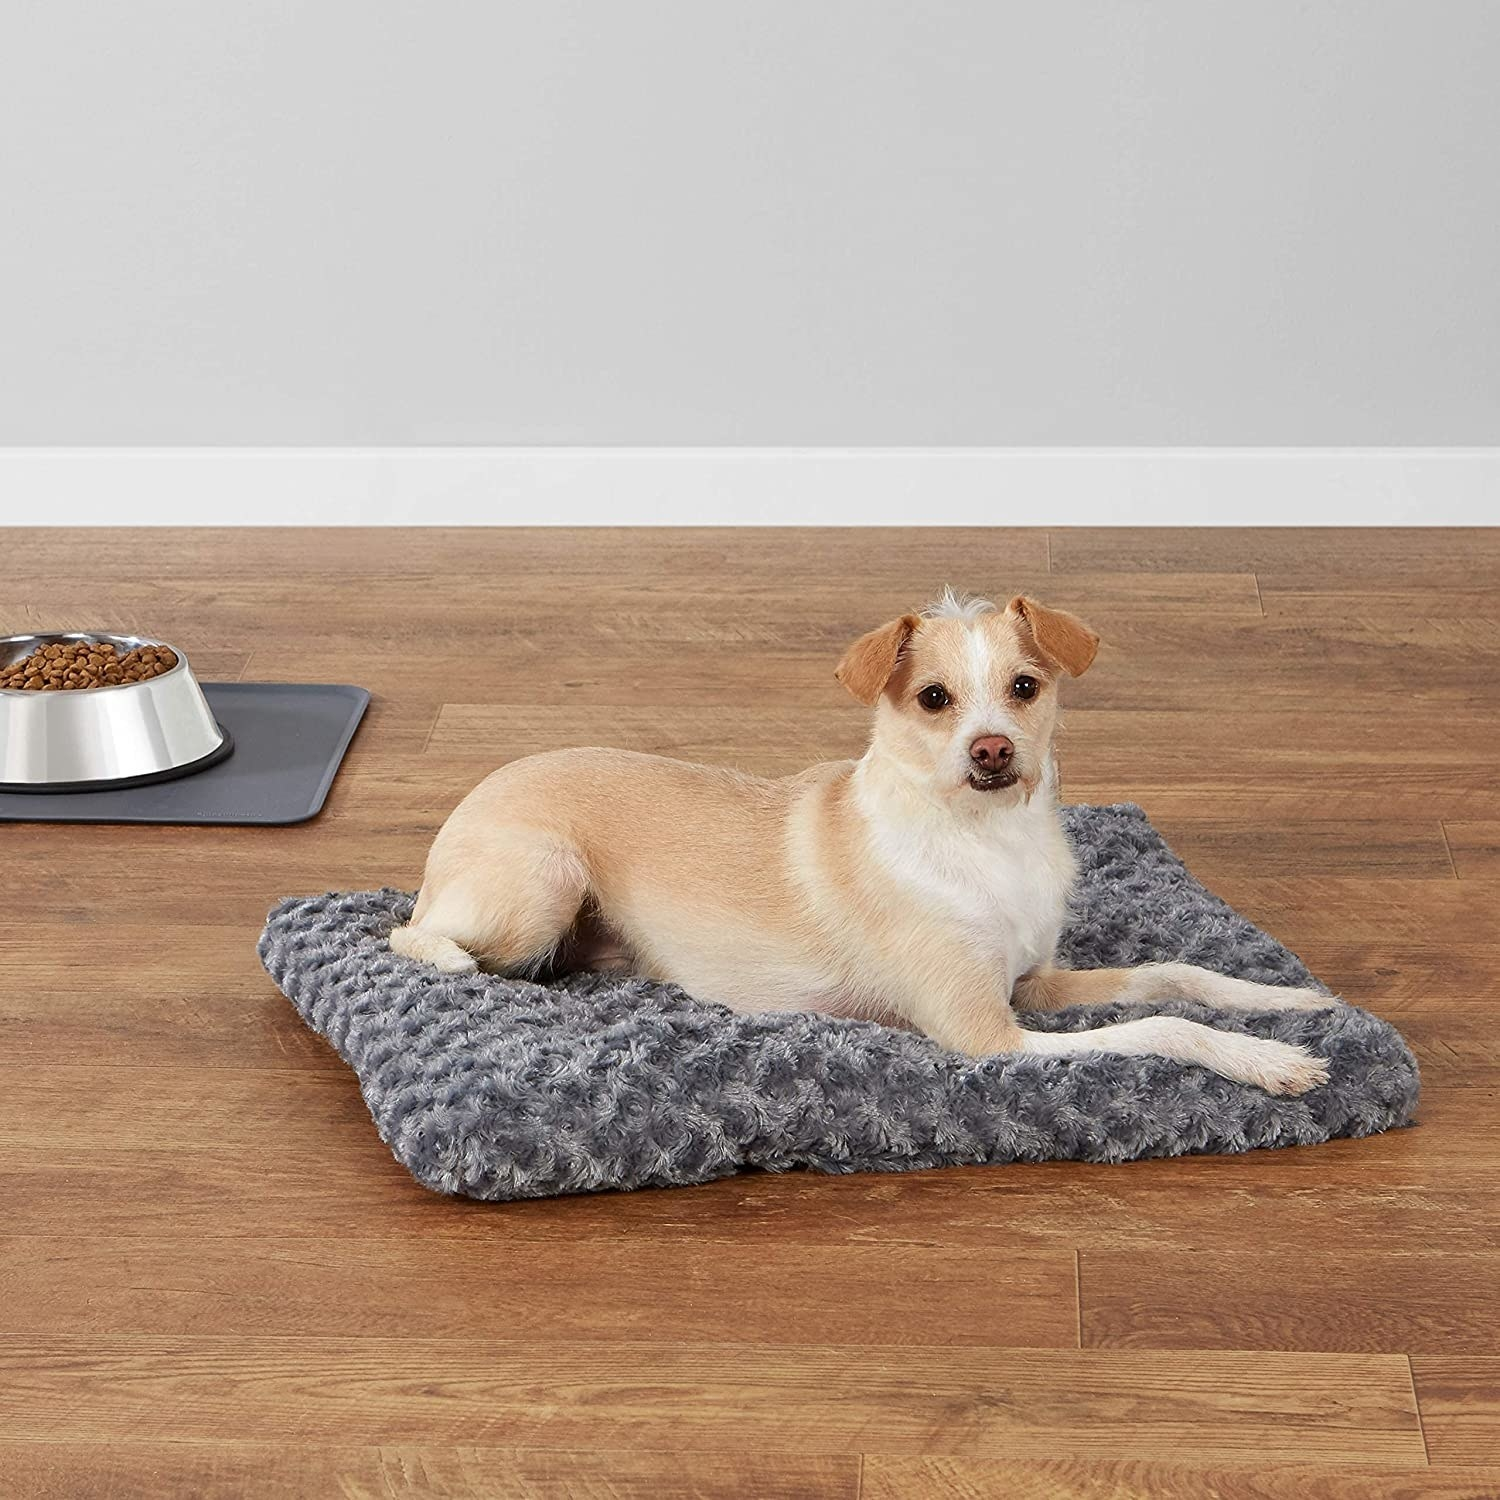 Small tan and white dog lying on a gray rectangular dog bed